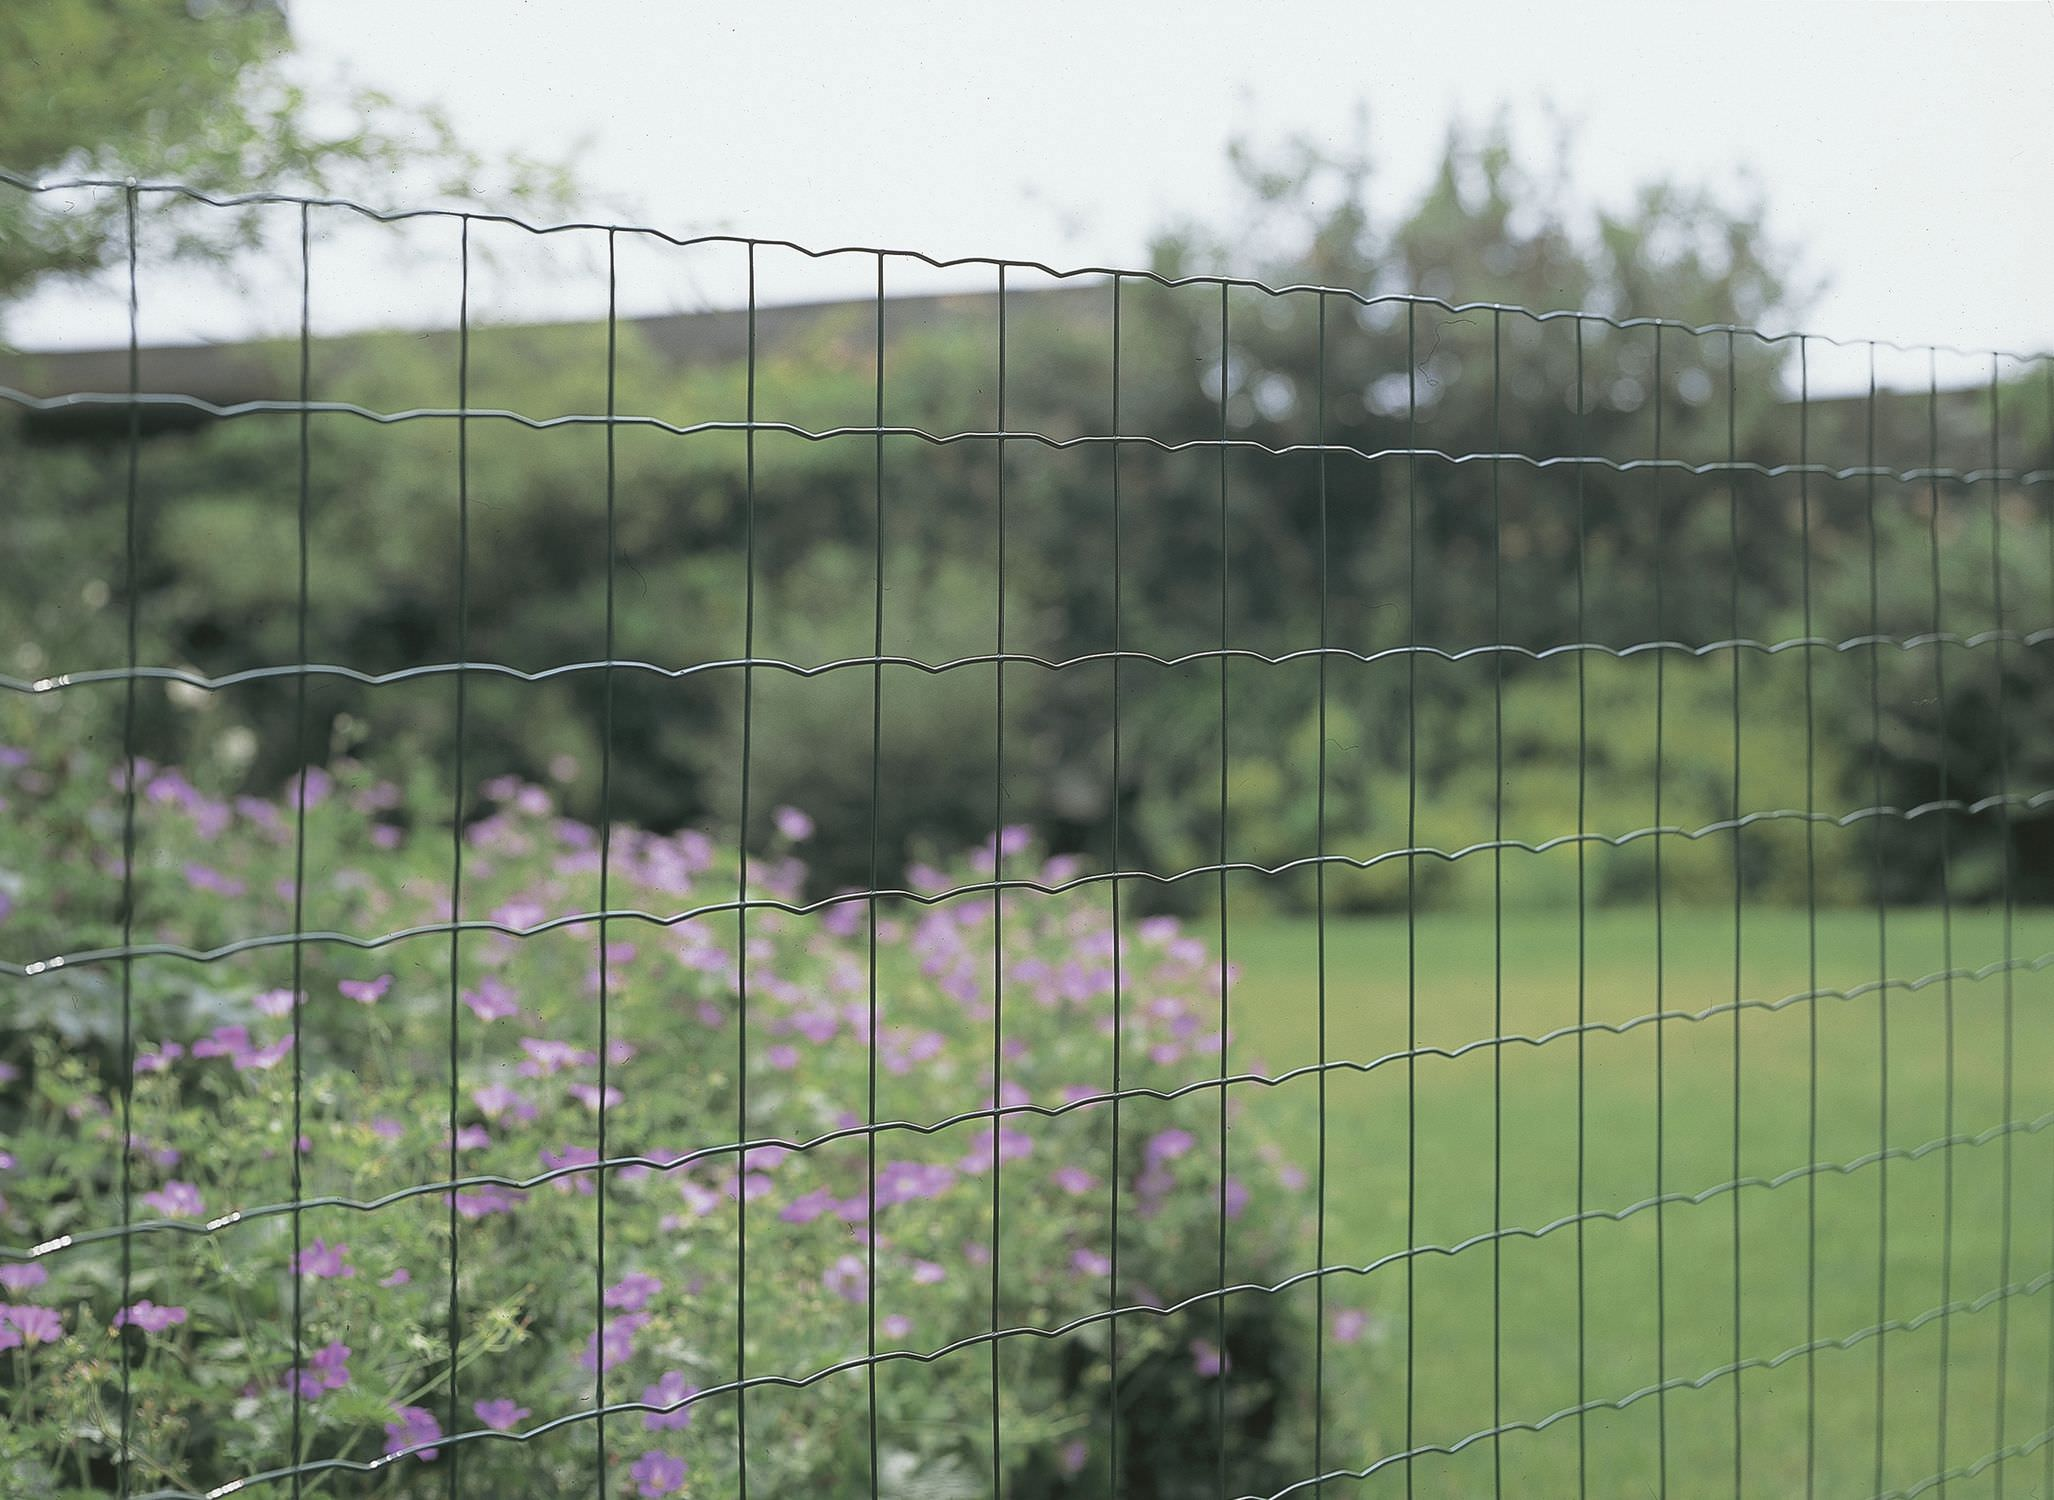 Garden fence wire mesh metal PANTANET LIGHT BETAFENCE